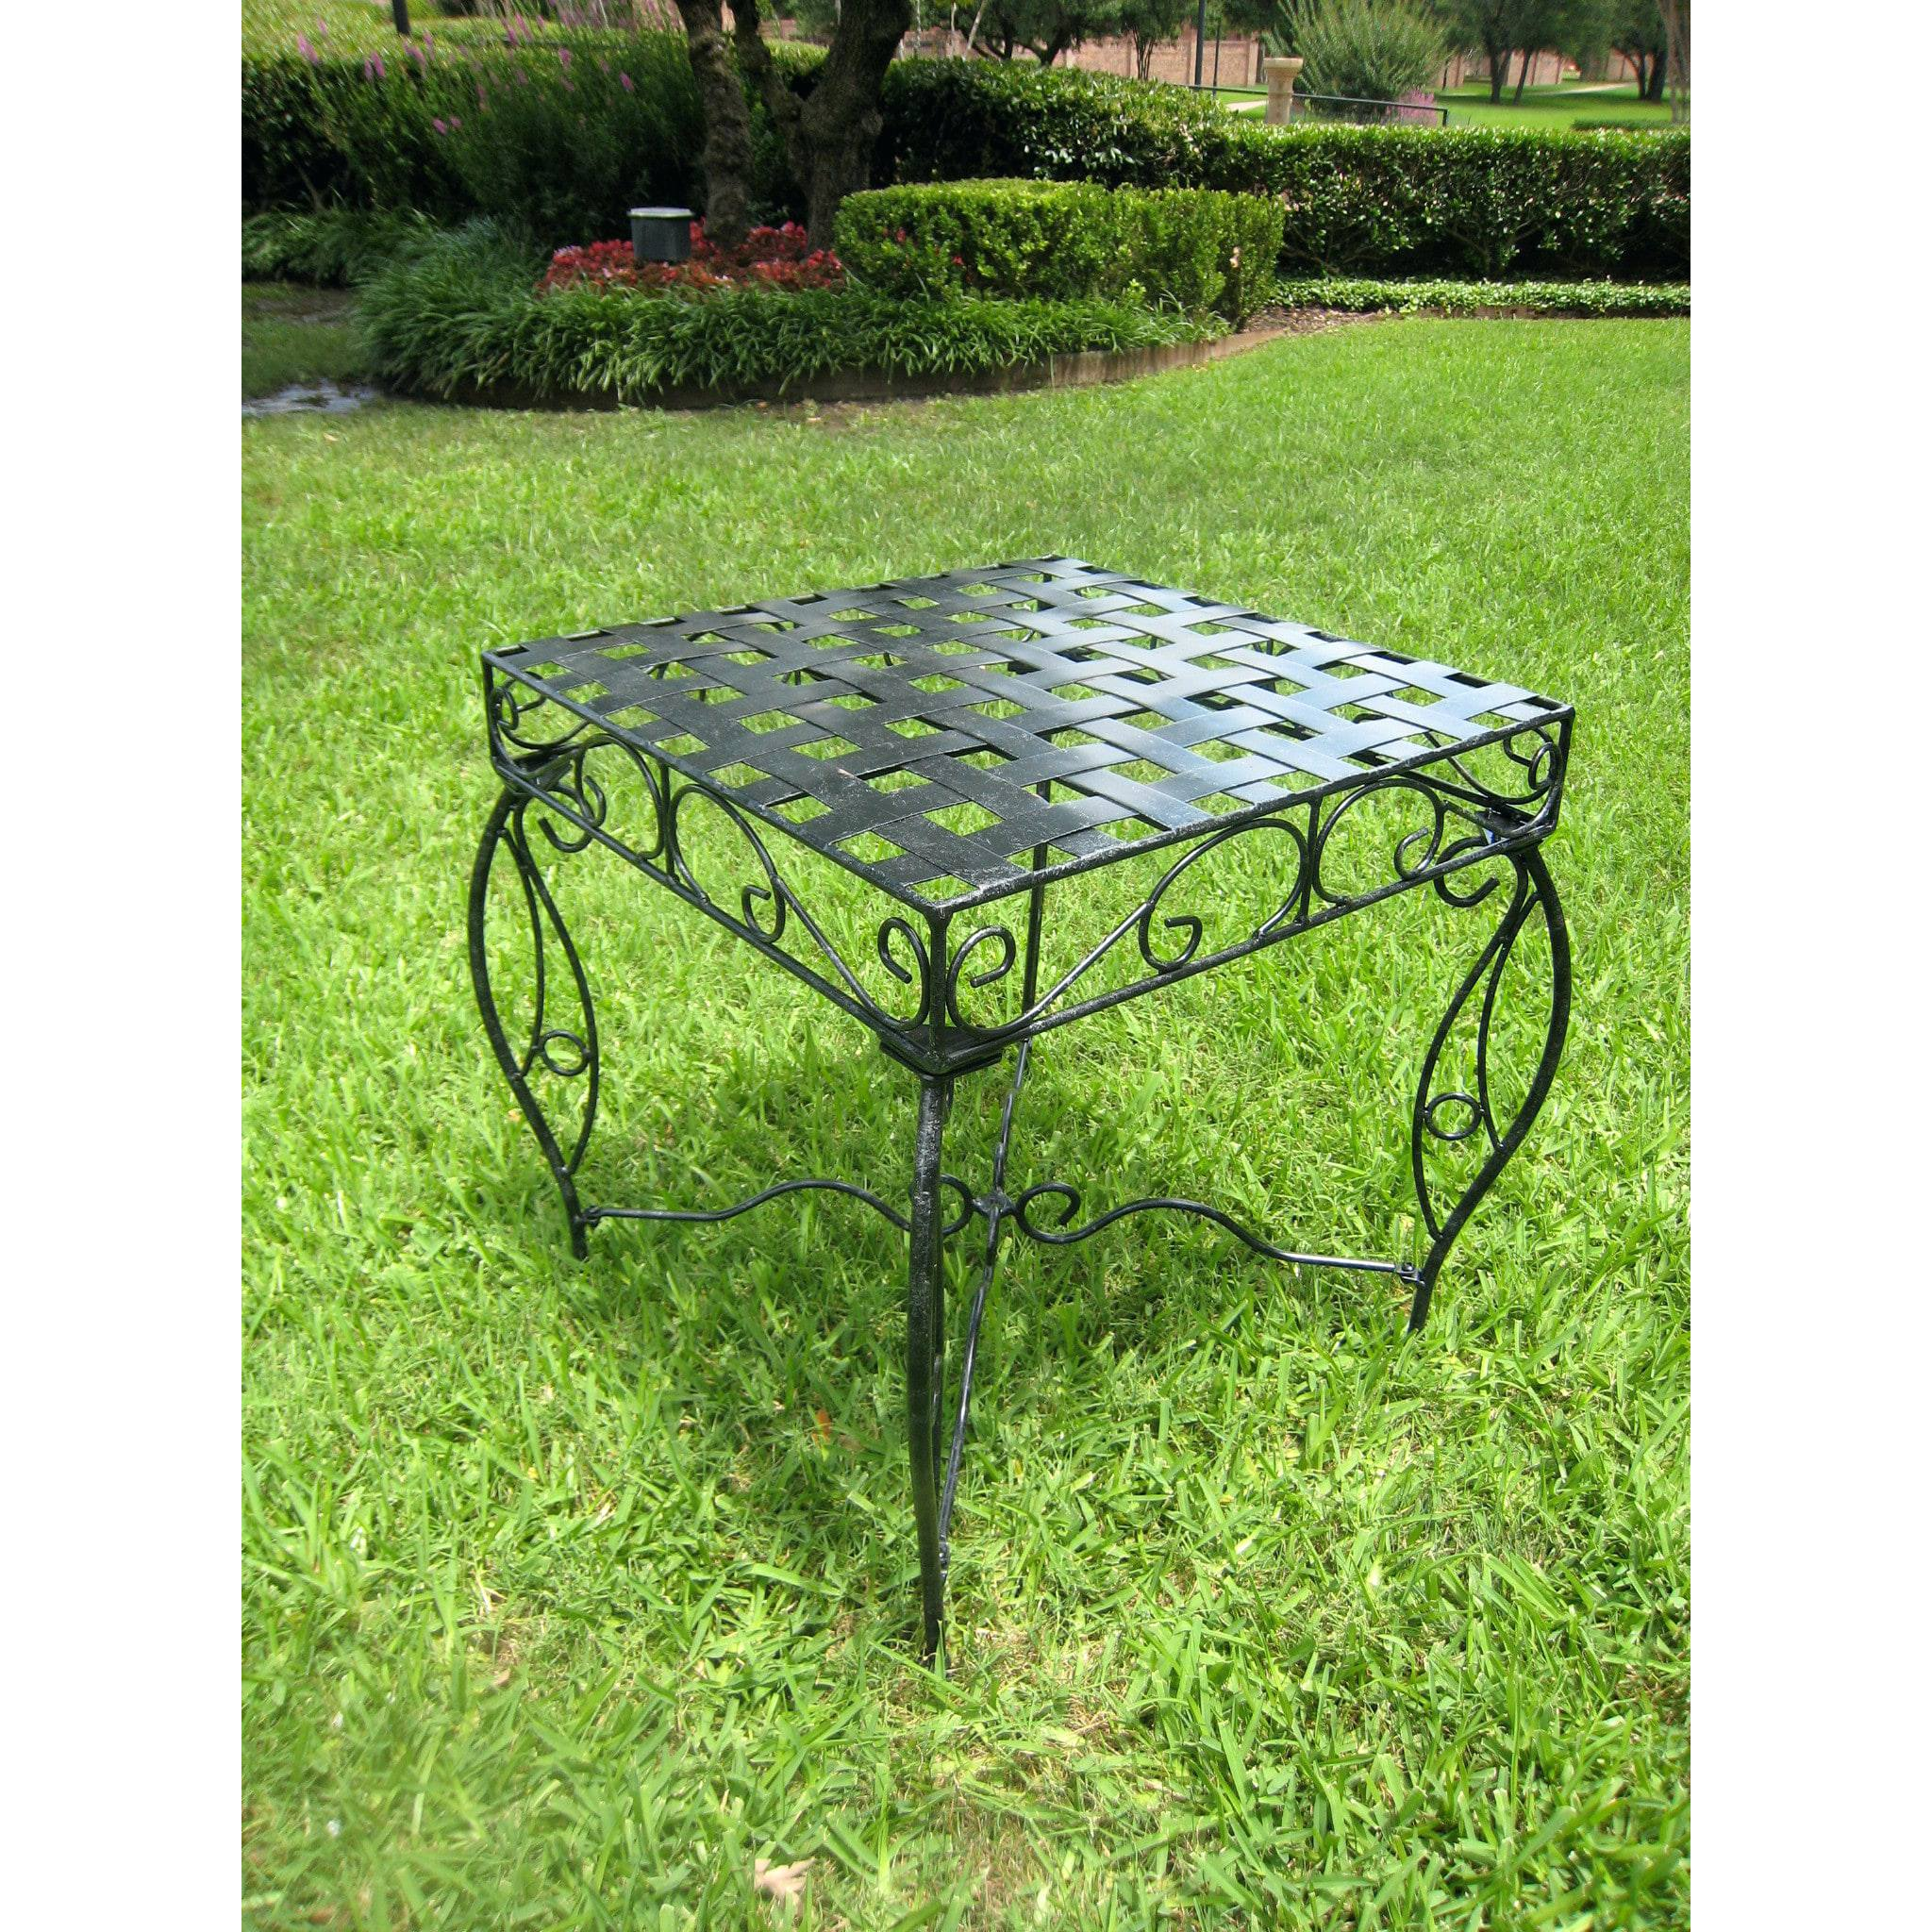 metal outdoor side table patio coffee round international caravan end new vintage furniture ikea pineapple light brass glass top screw desk legs macys tablecloth dining clearance